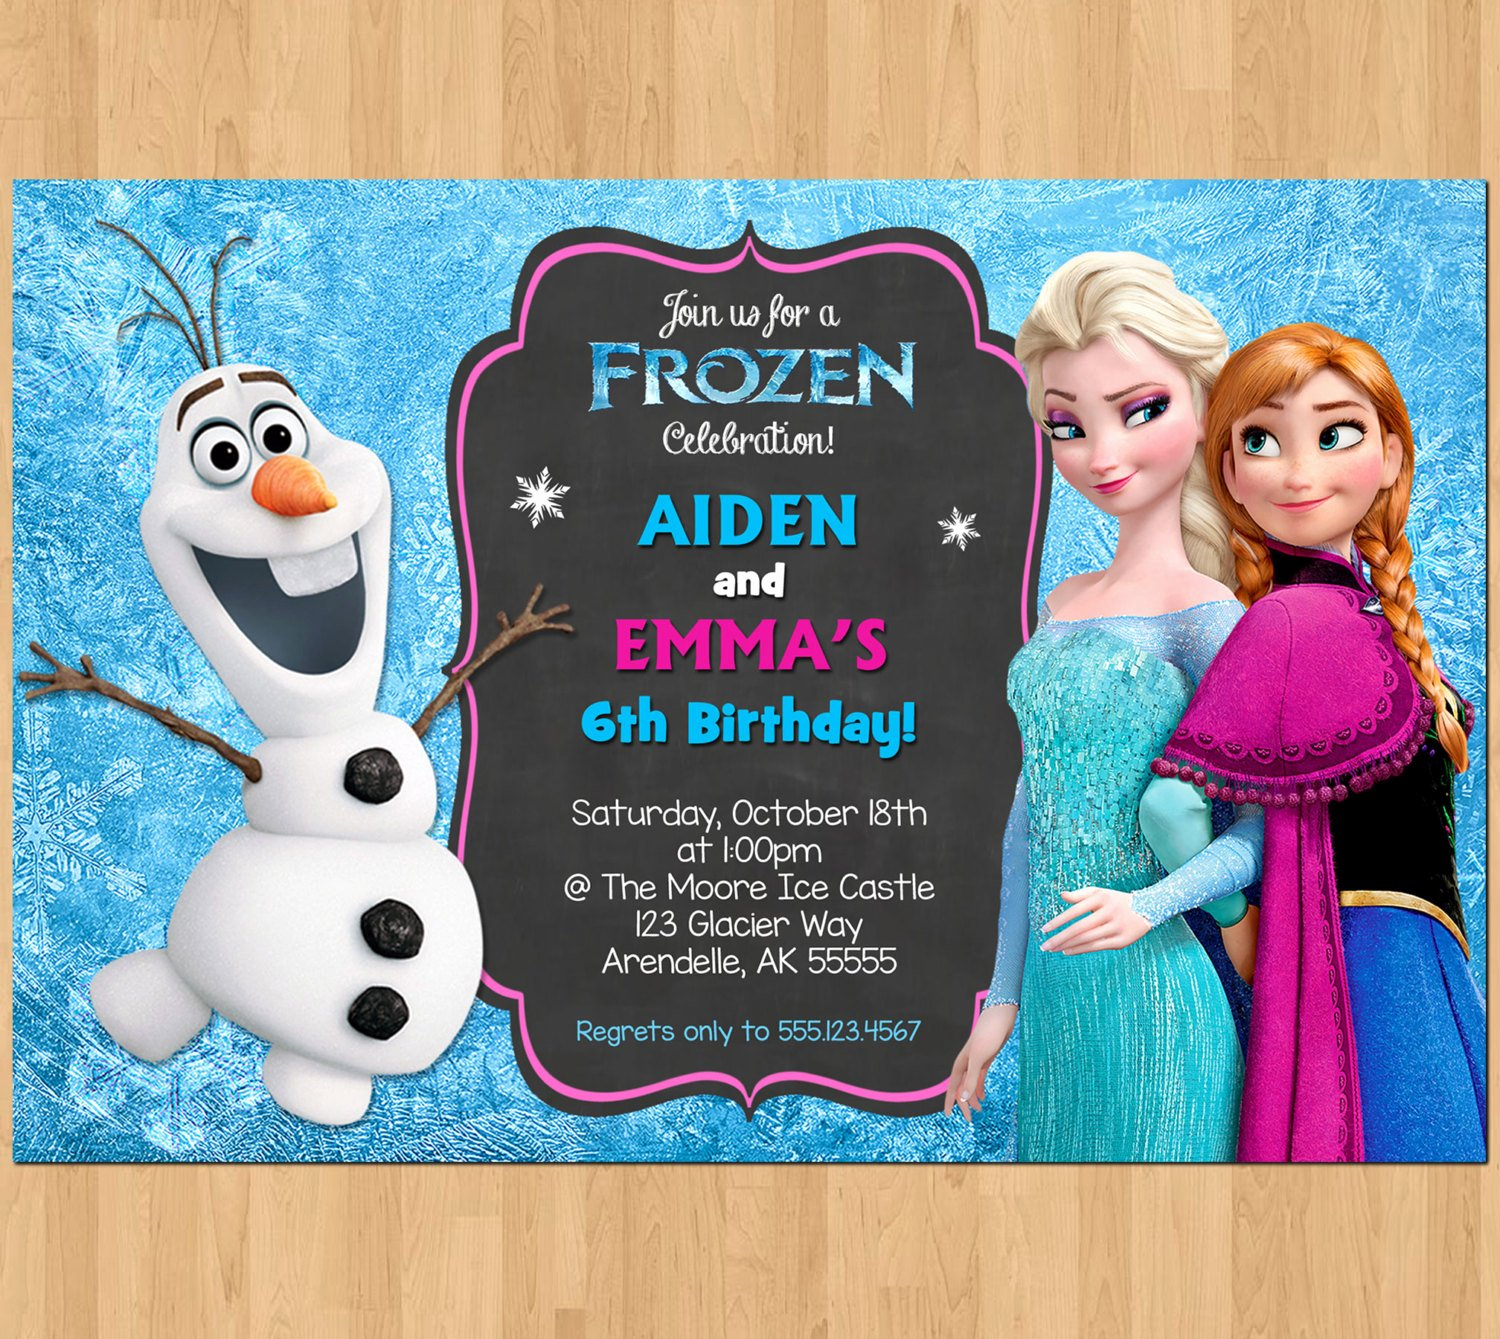 Frozen Party Invitation Template Lovely Sibling Birthday Invitation Frozen Invitation Olaf Elsa Anna